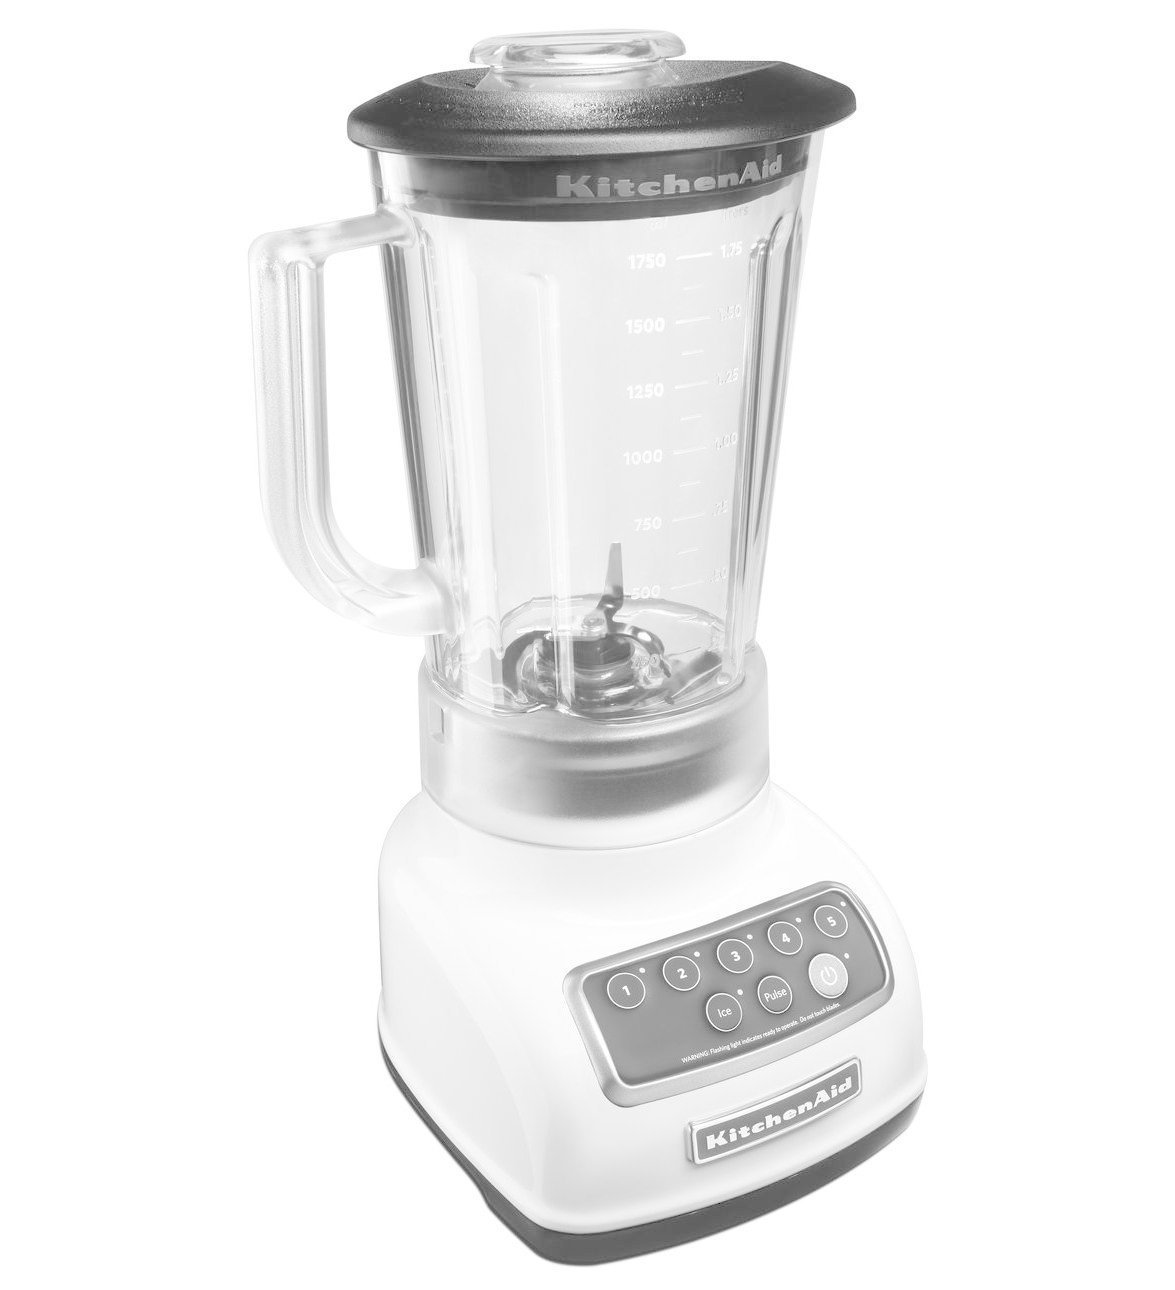 KitchenAid RKSB1570WH 5-Speed Blender with 56-Ounce BPA-Free Pitcher - White (Certified Refurbished)